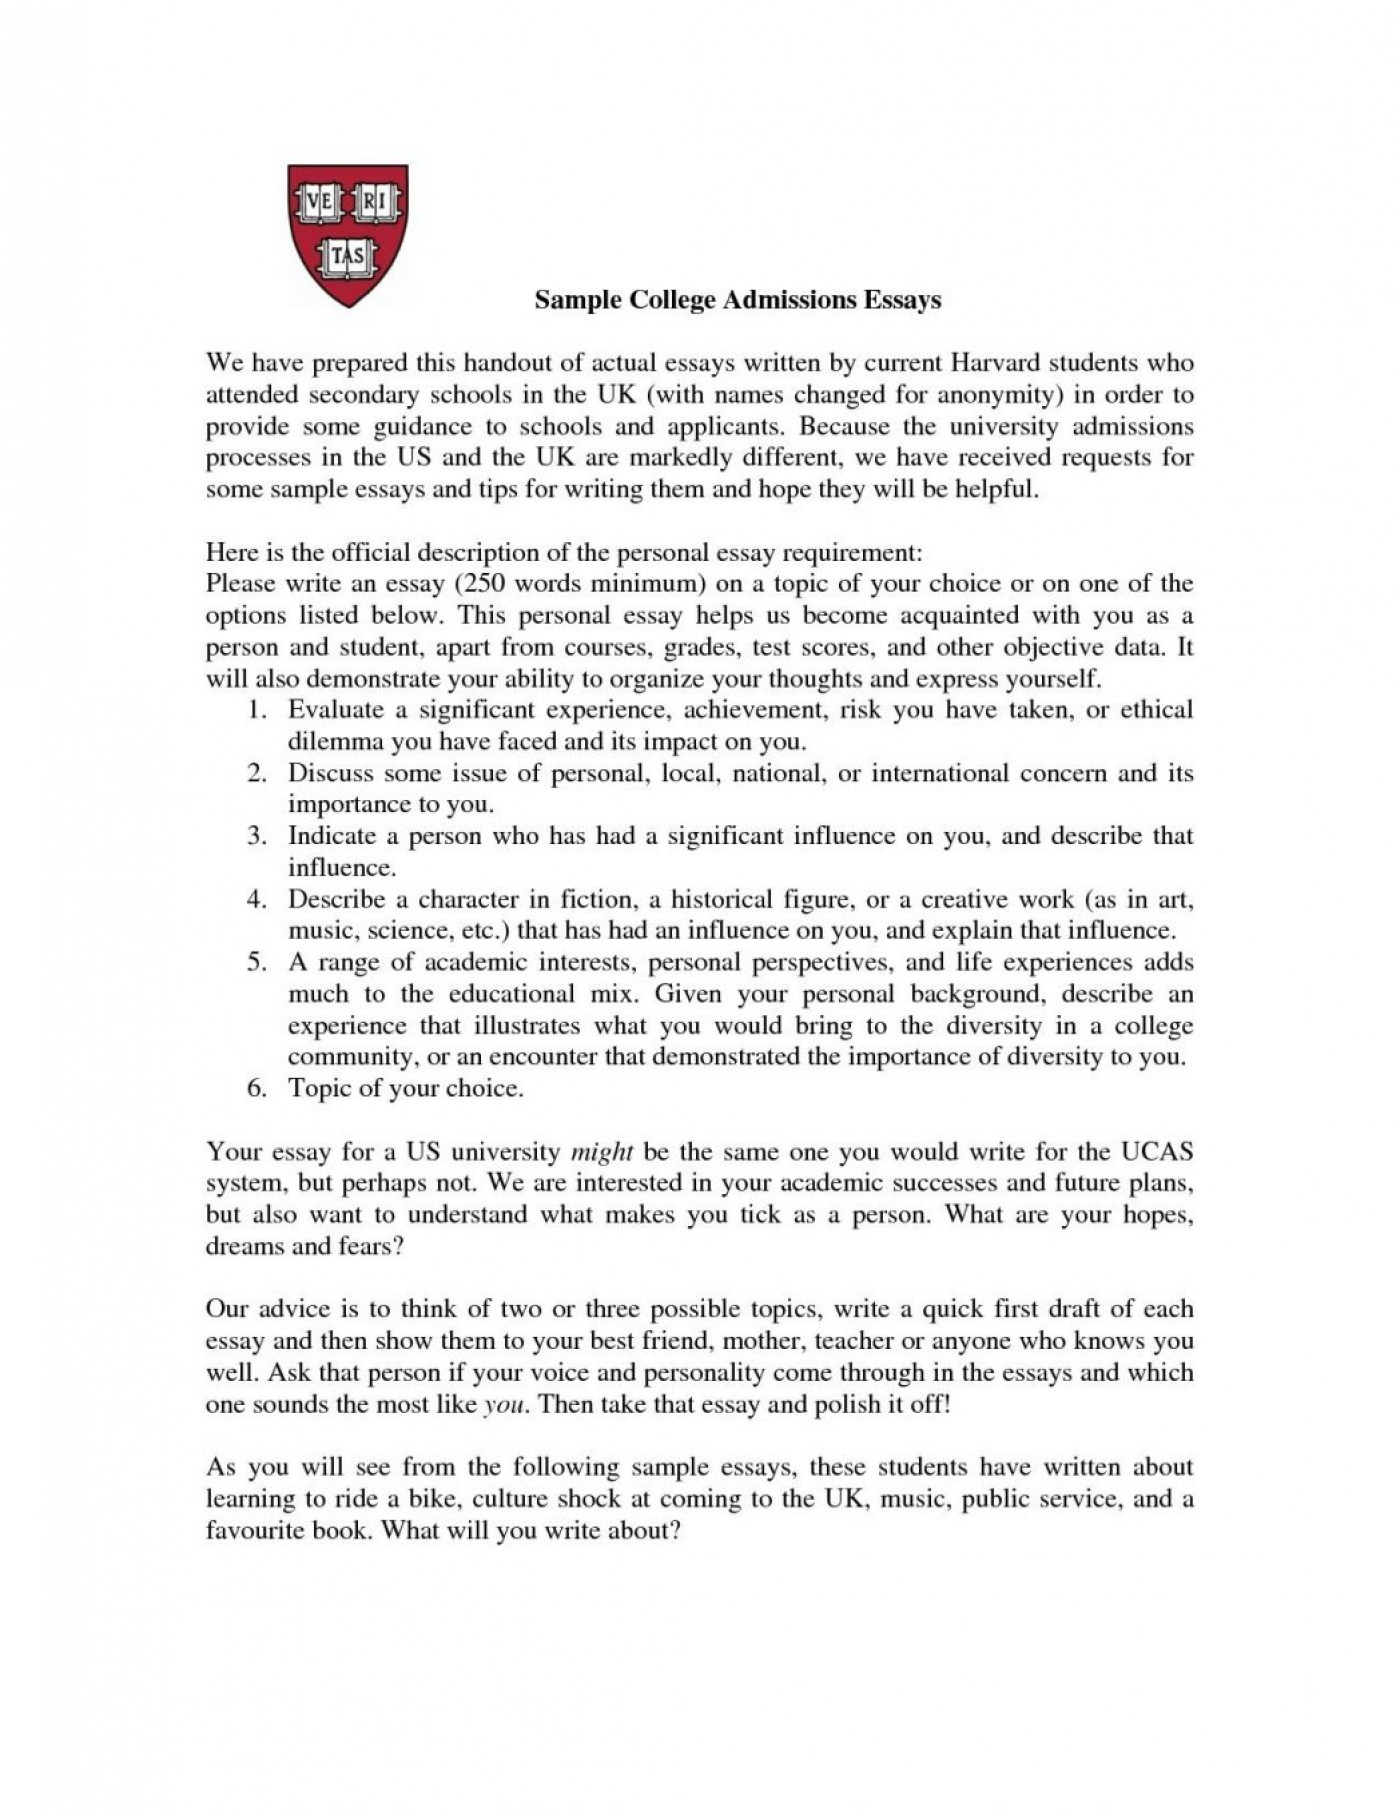 003 Common App Essays That Worked Harvard Essay Example Template Design College Examples Collection Of Free Application Transfer Topic Inside Words Writing Workshop Phenomenal 1400